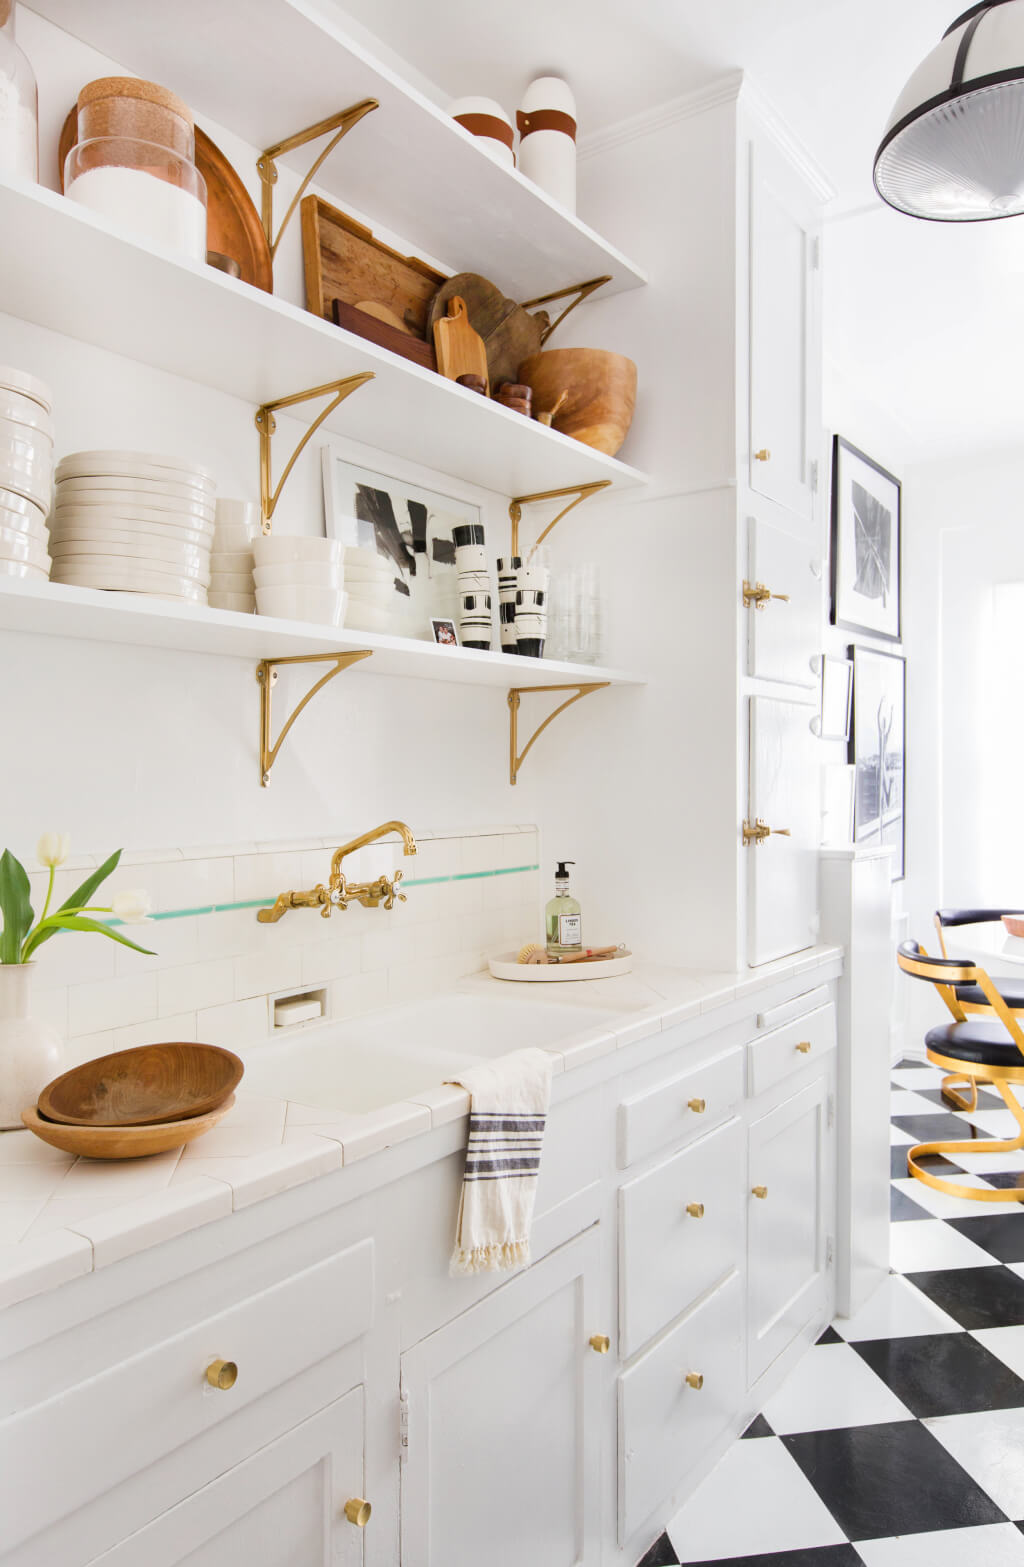 Brady-Tolbert_Emily-Henderson_Black-and-White-Kitchen_Vintage_Apartment-Refresh_Wood_Brass_Checkered-Floor_Copper-Pots_Eclectic_Glam_Modern_Traditional_19-1024x1567